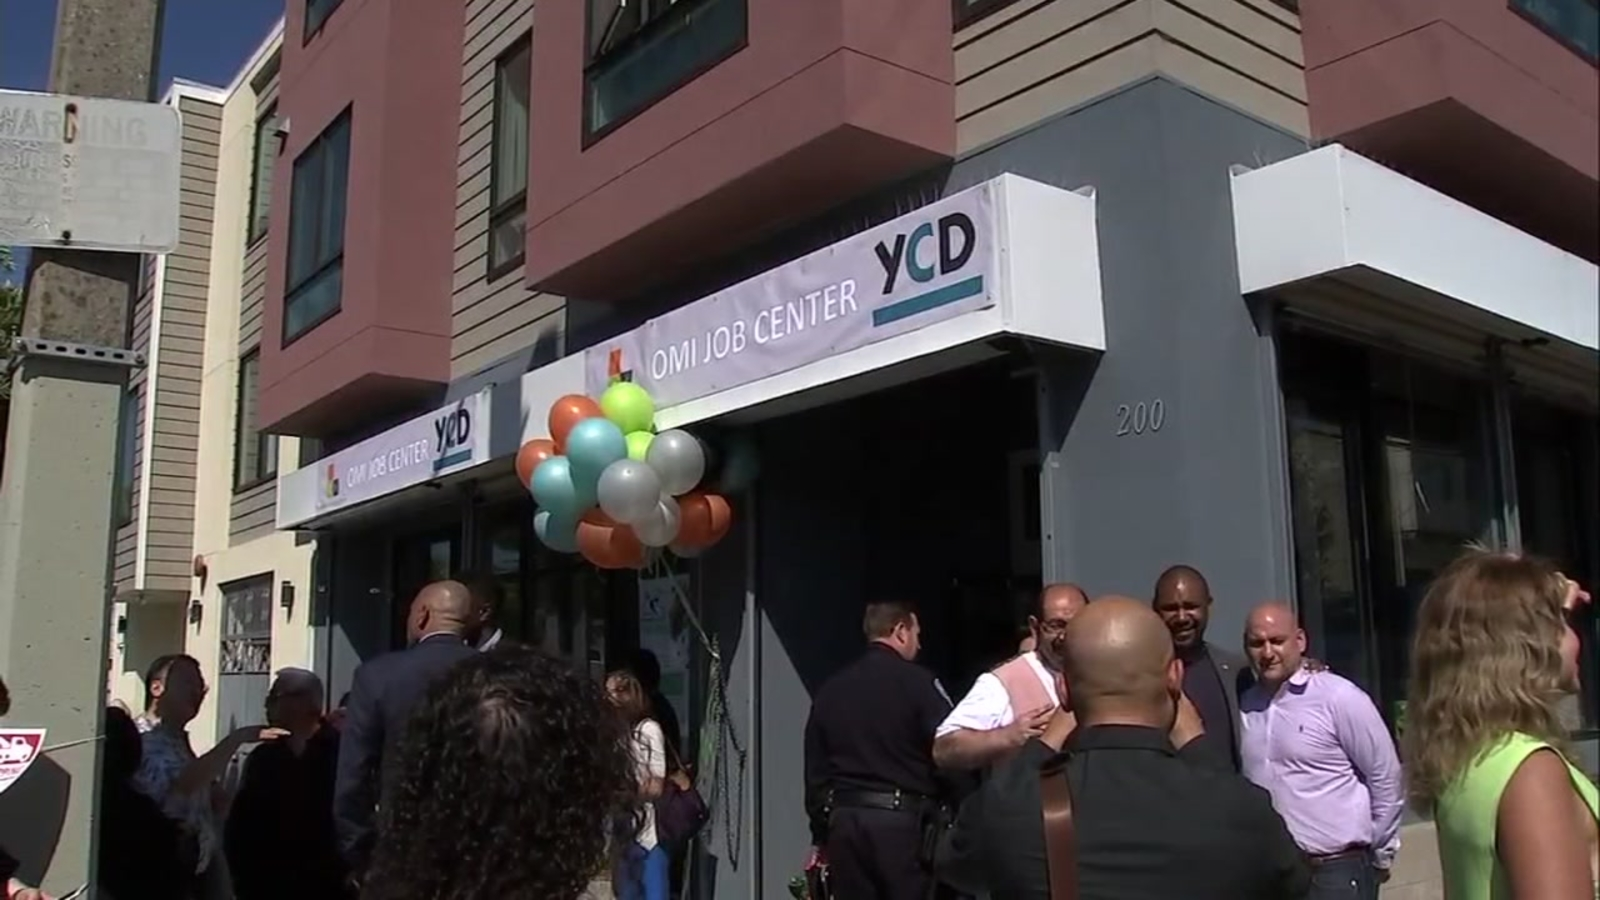 First job center opens in the 'forgotten district' in San Francisco